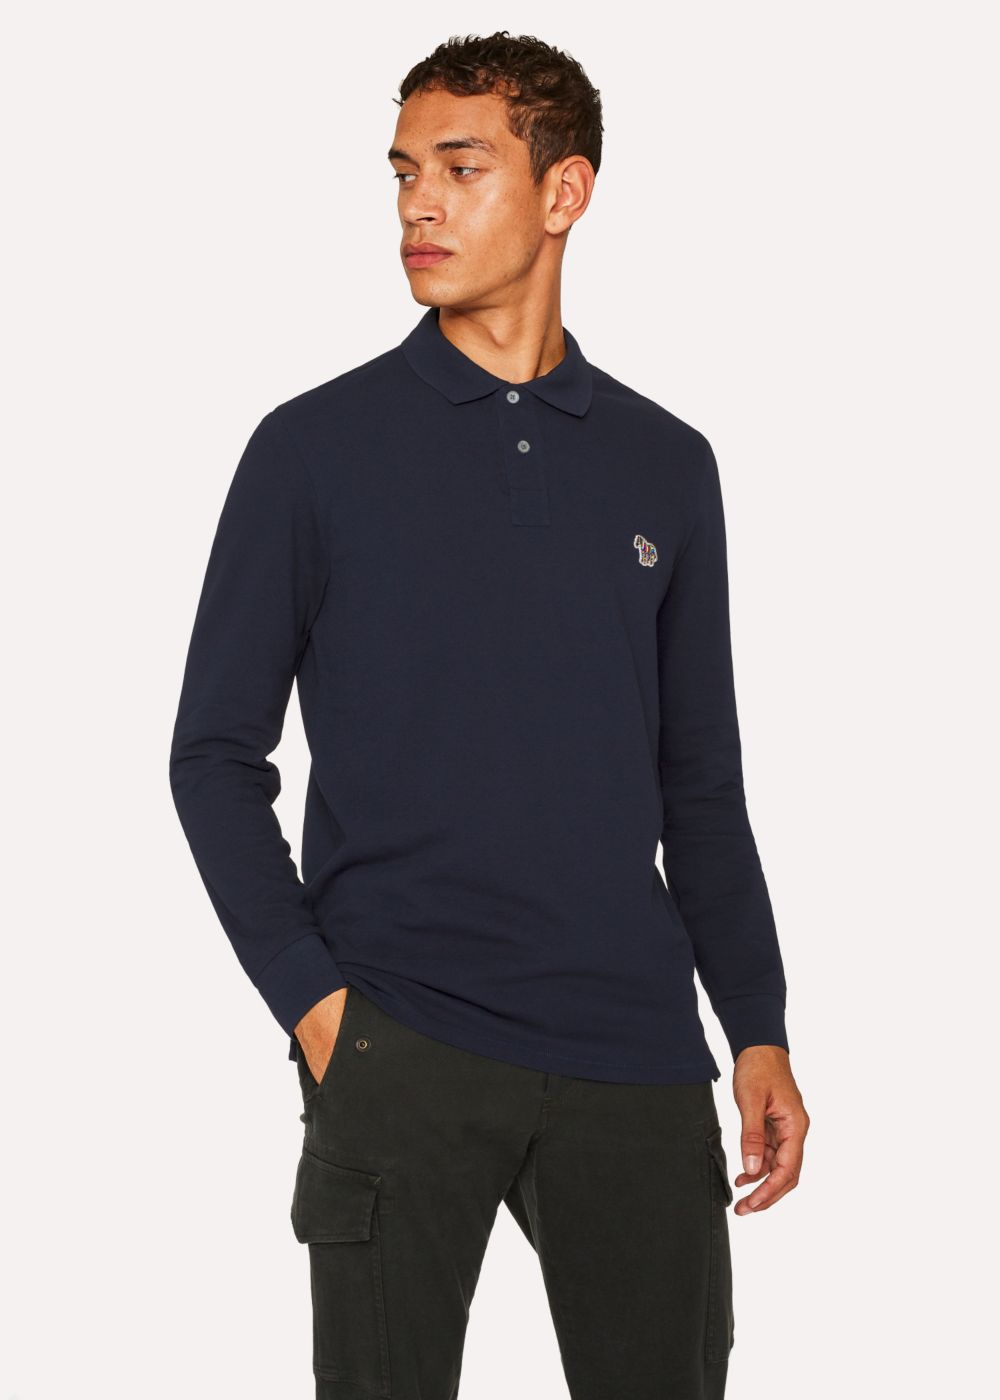 Paul Smith - Navy Long Sleeve